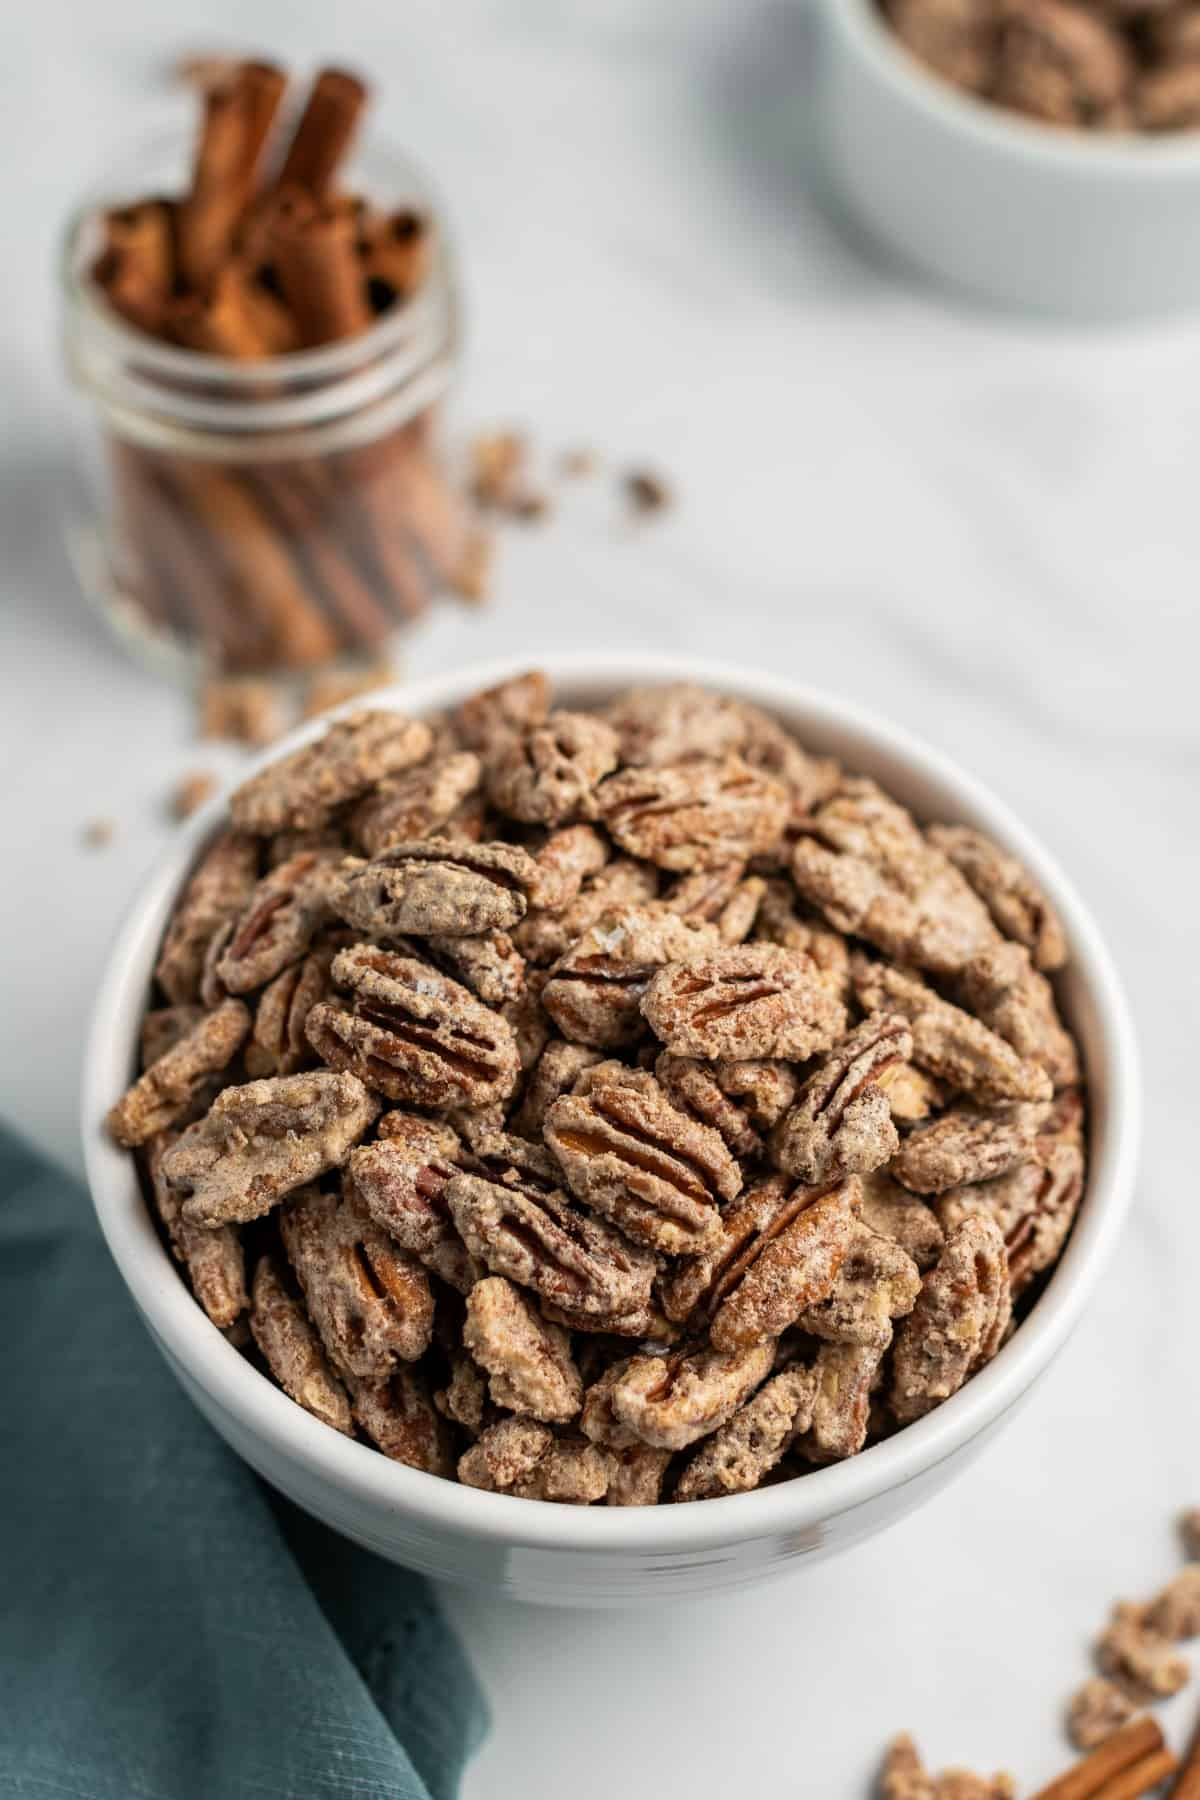 White bowl filled with candied pecans. Cinnamon sticks in background.